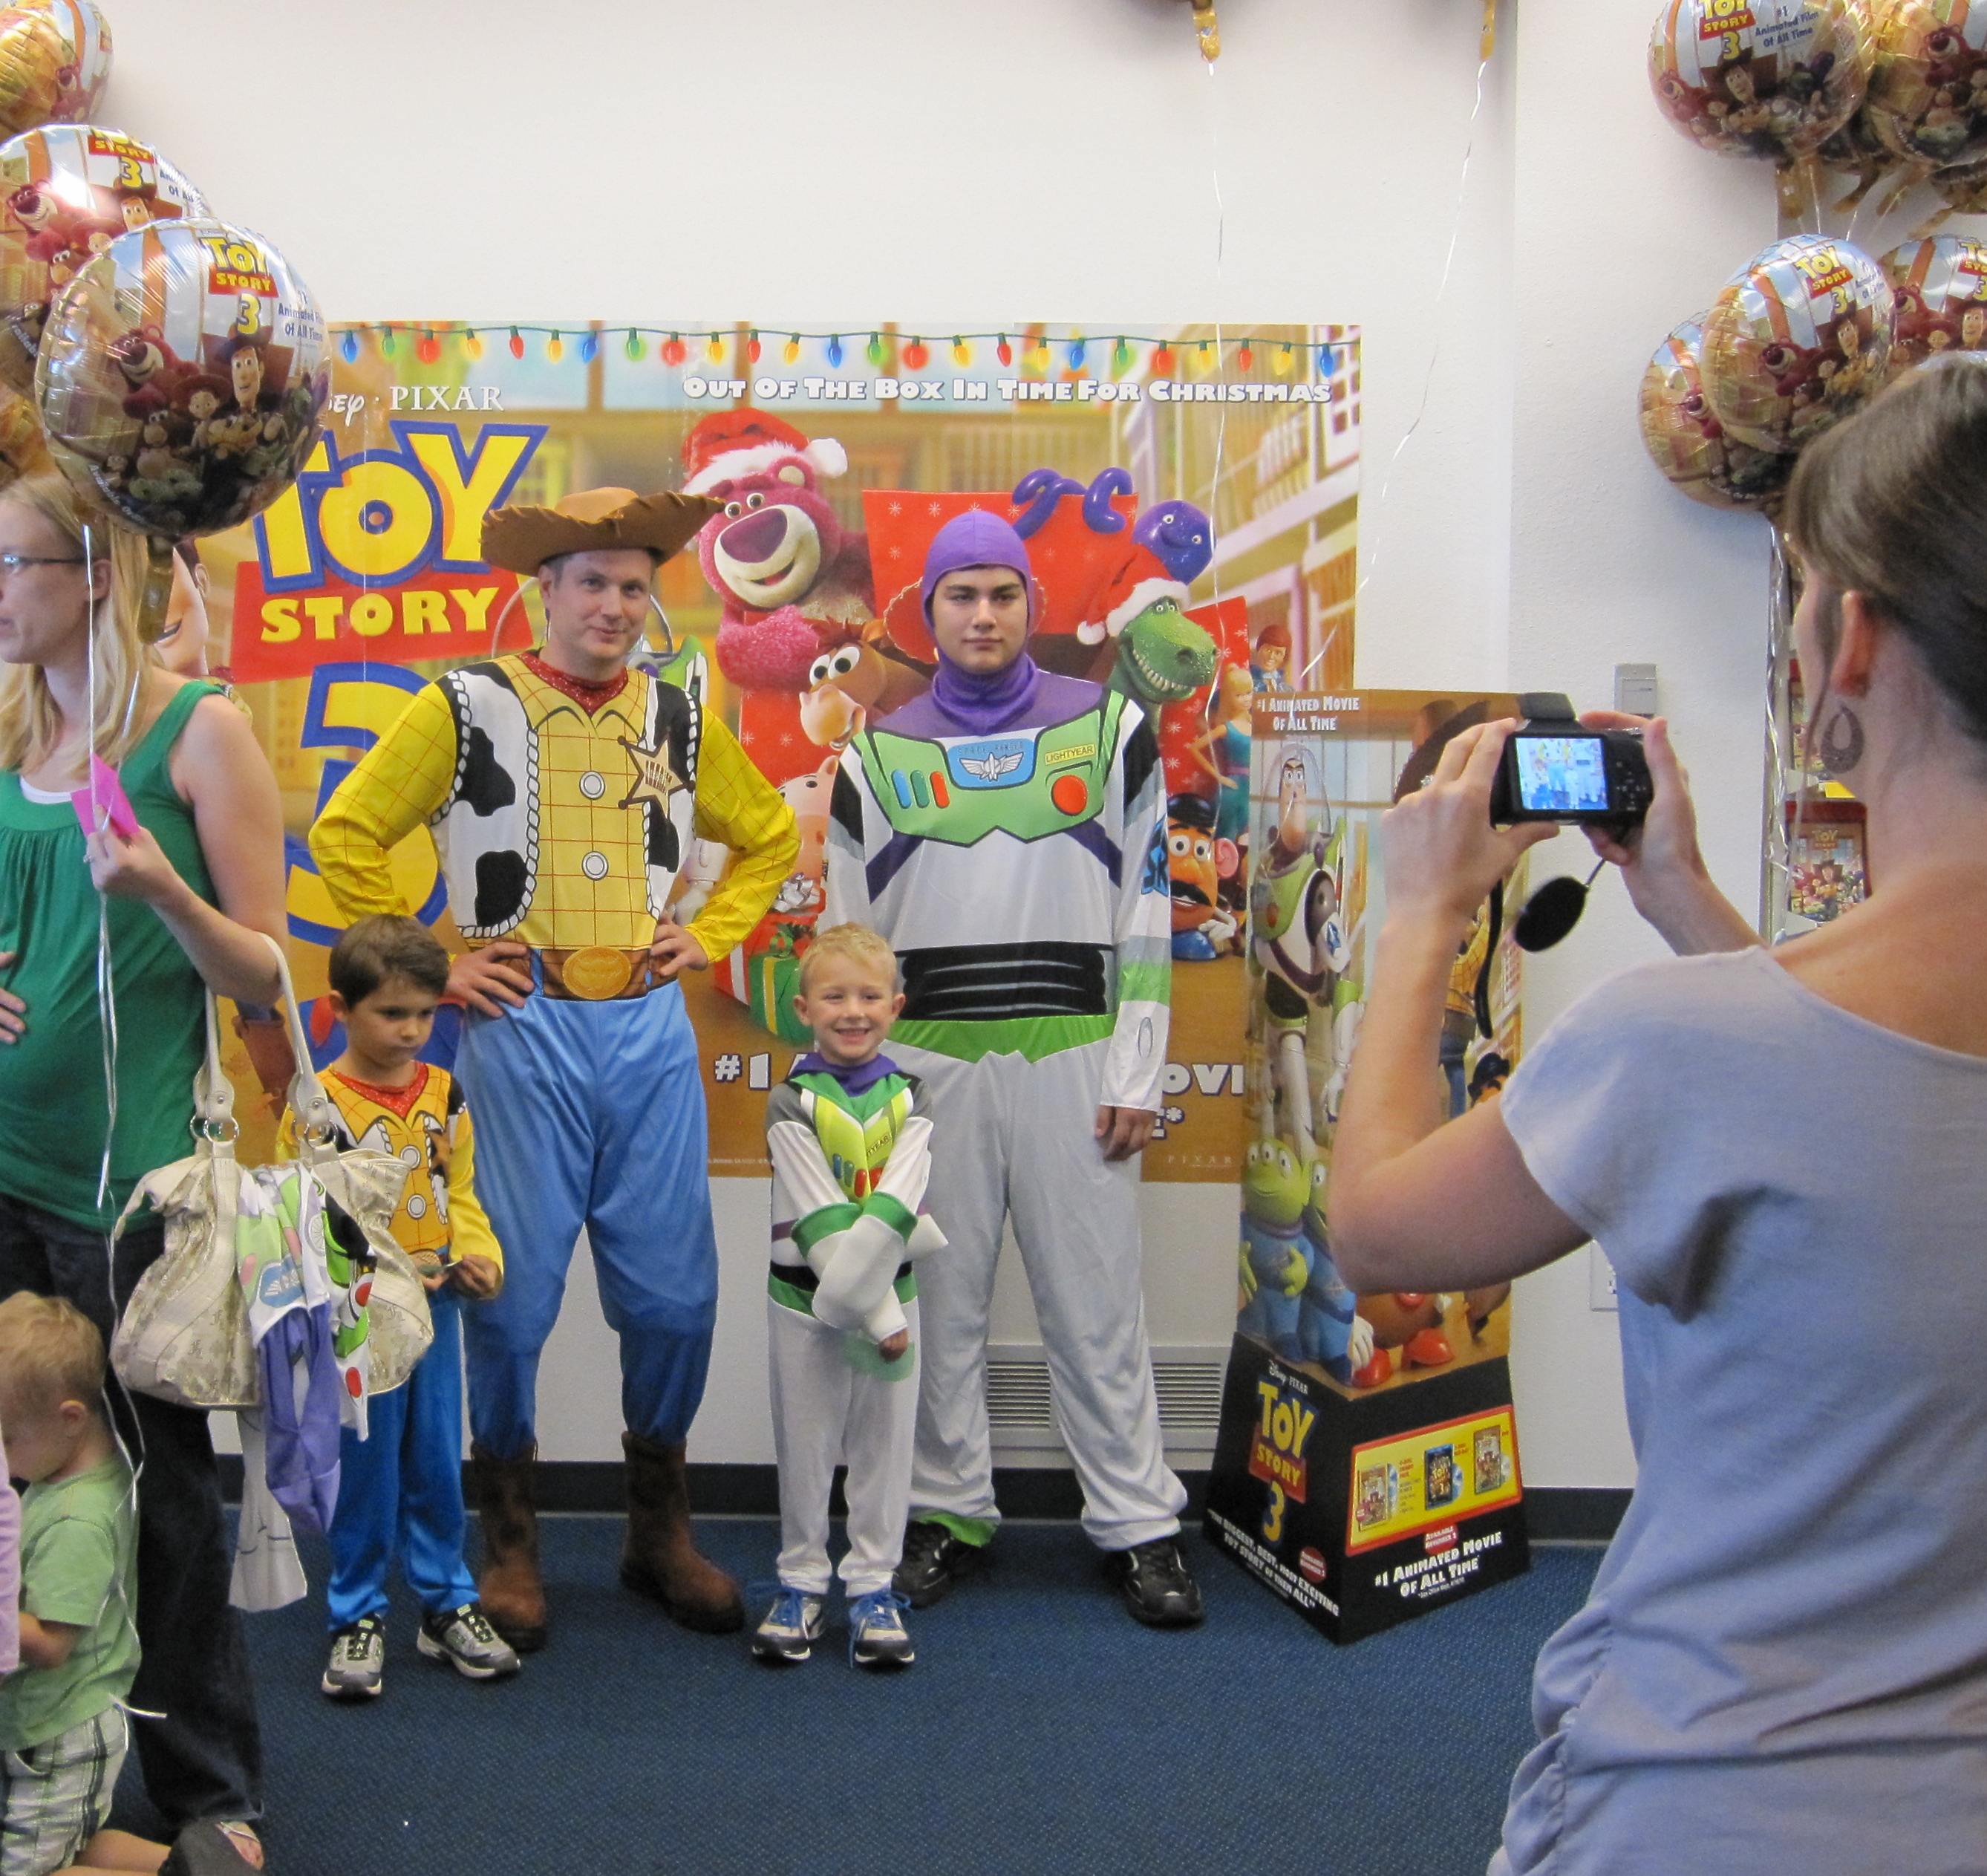 blog photo of toy story